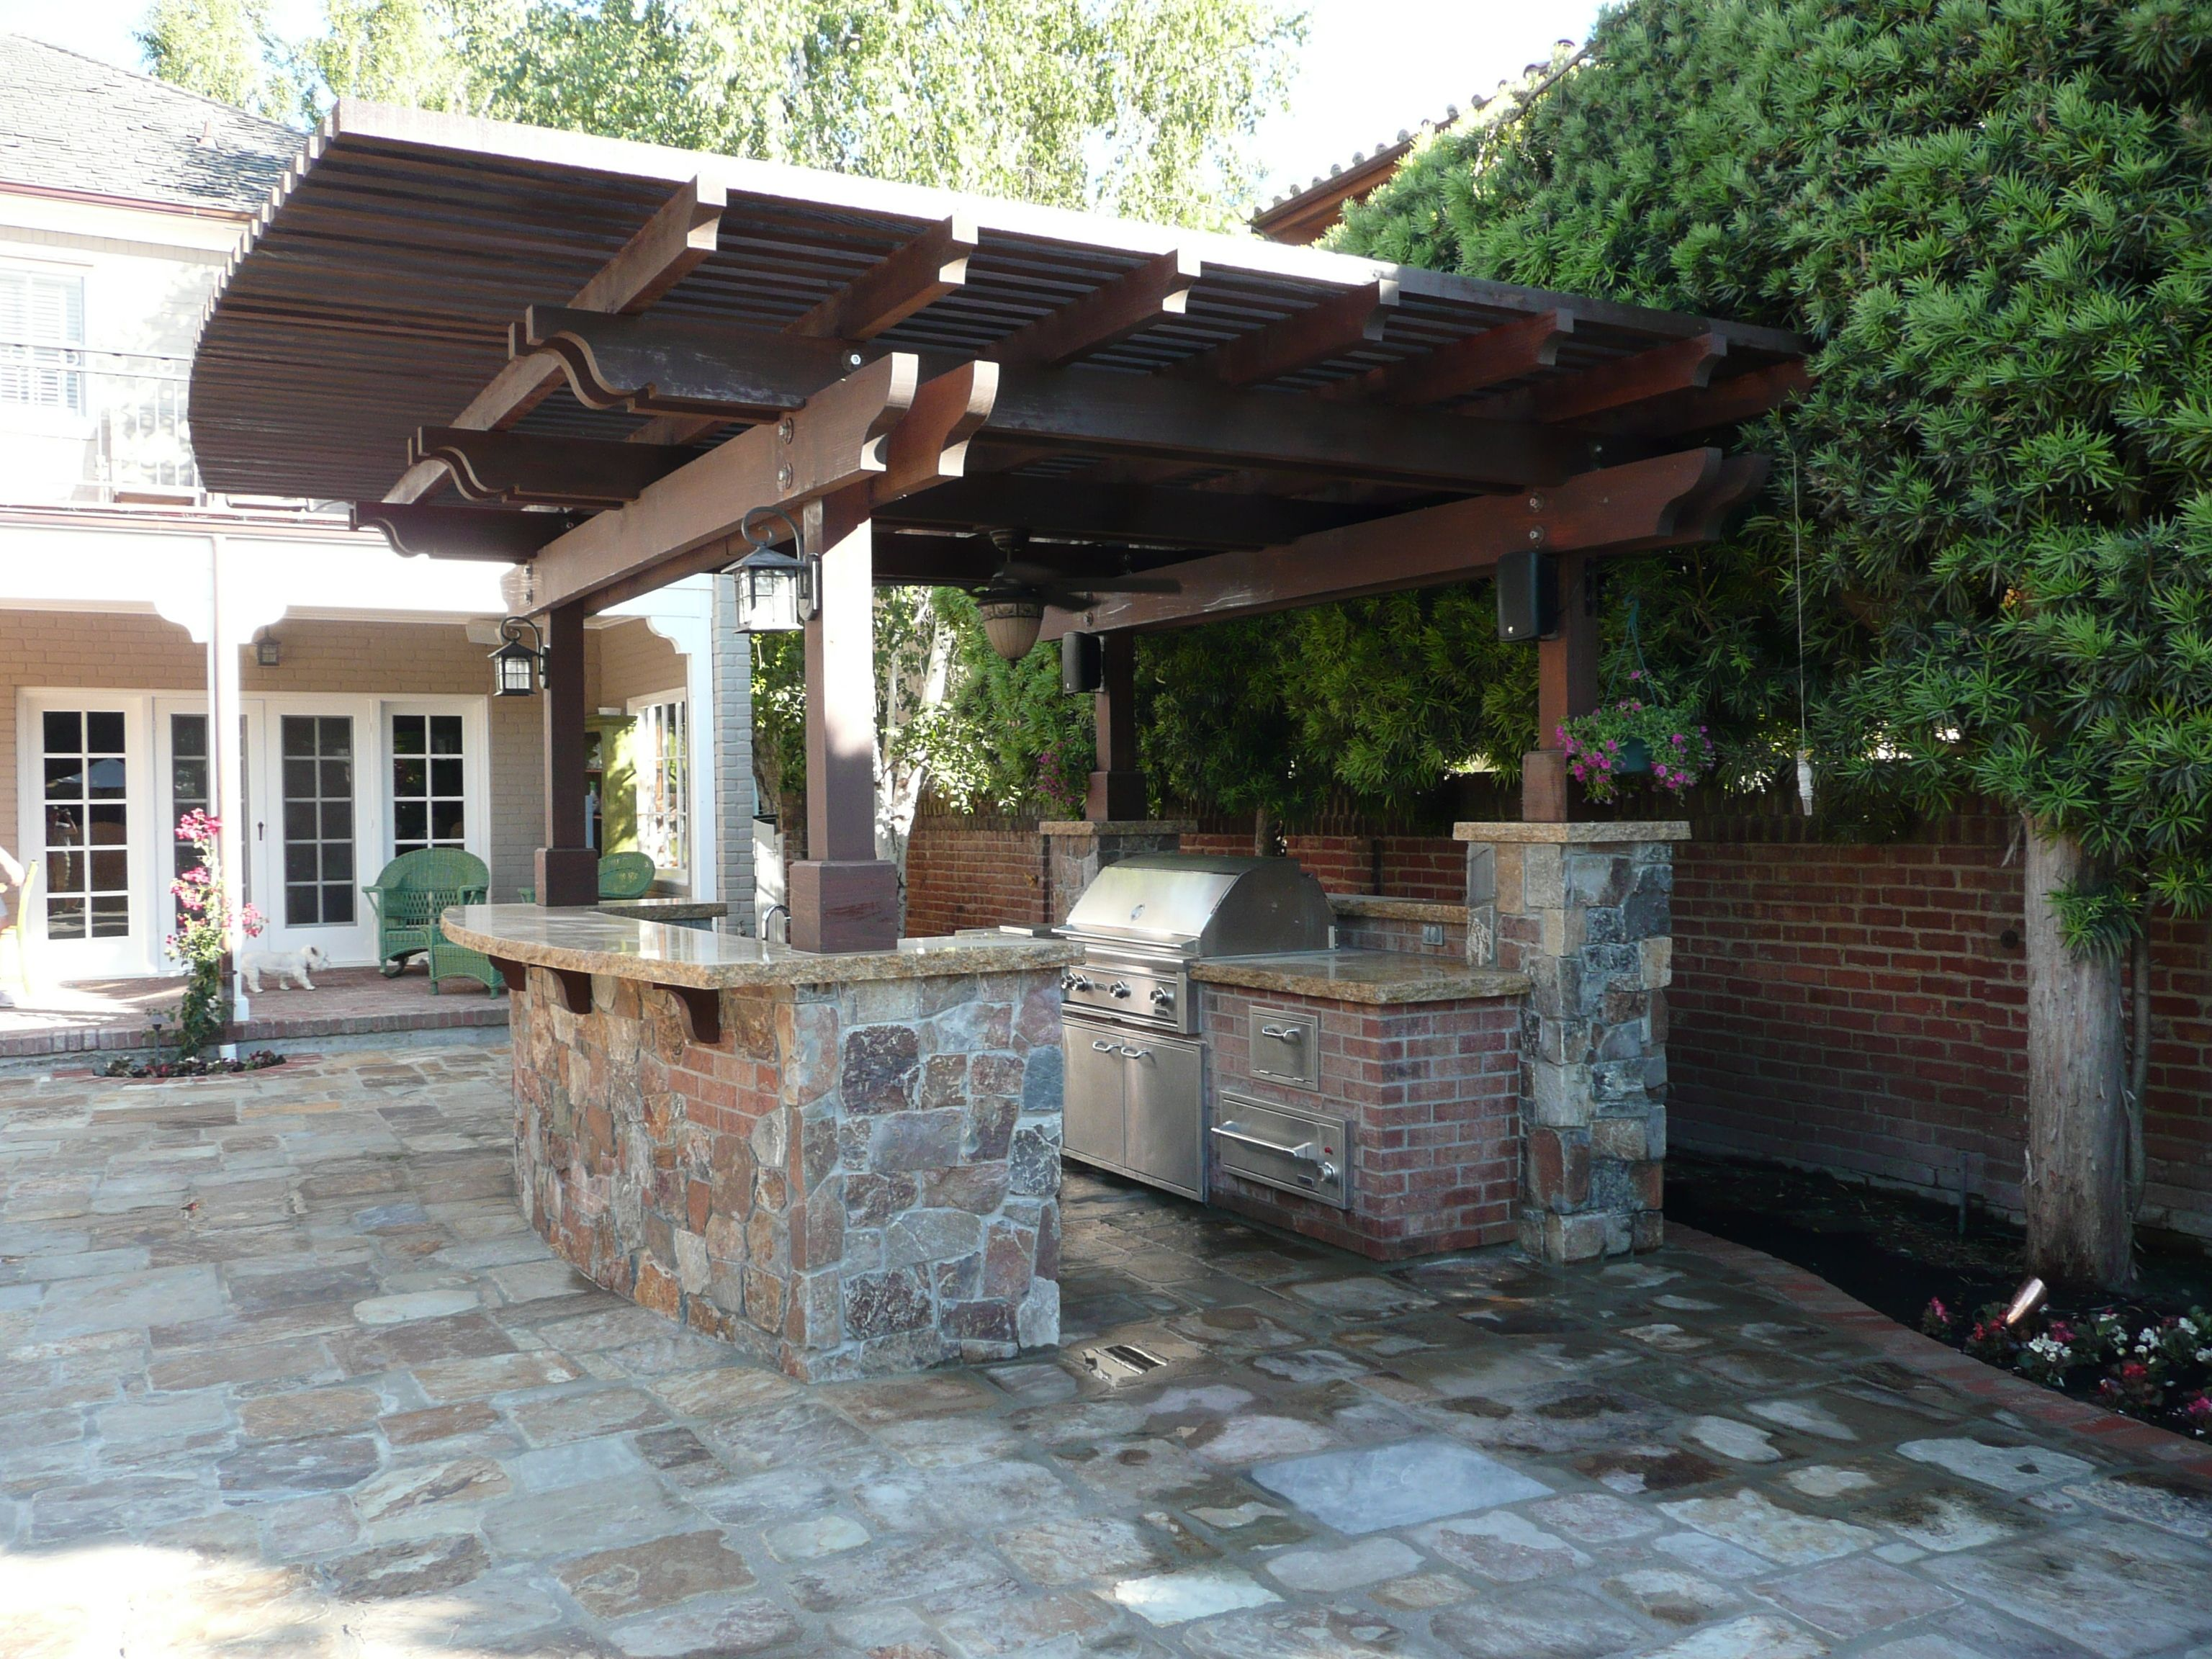 Covered Outdoor Kitchen Google Search Outdoor Kitchen Pinterest Covered Outdoor Kitchens